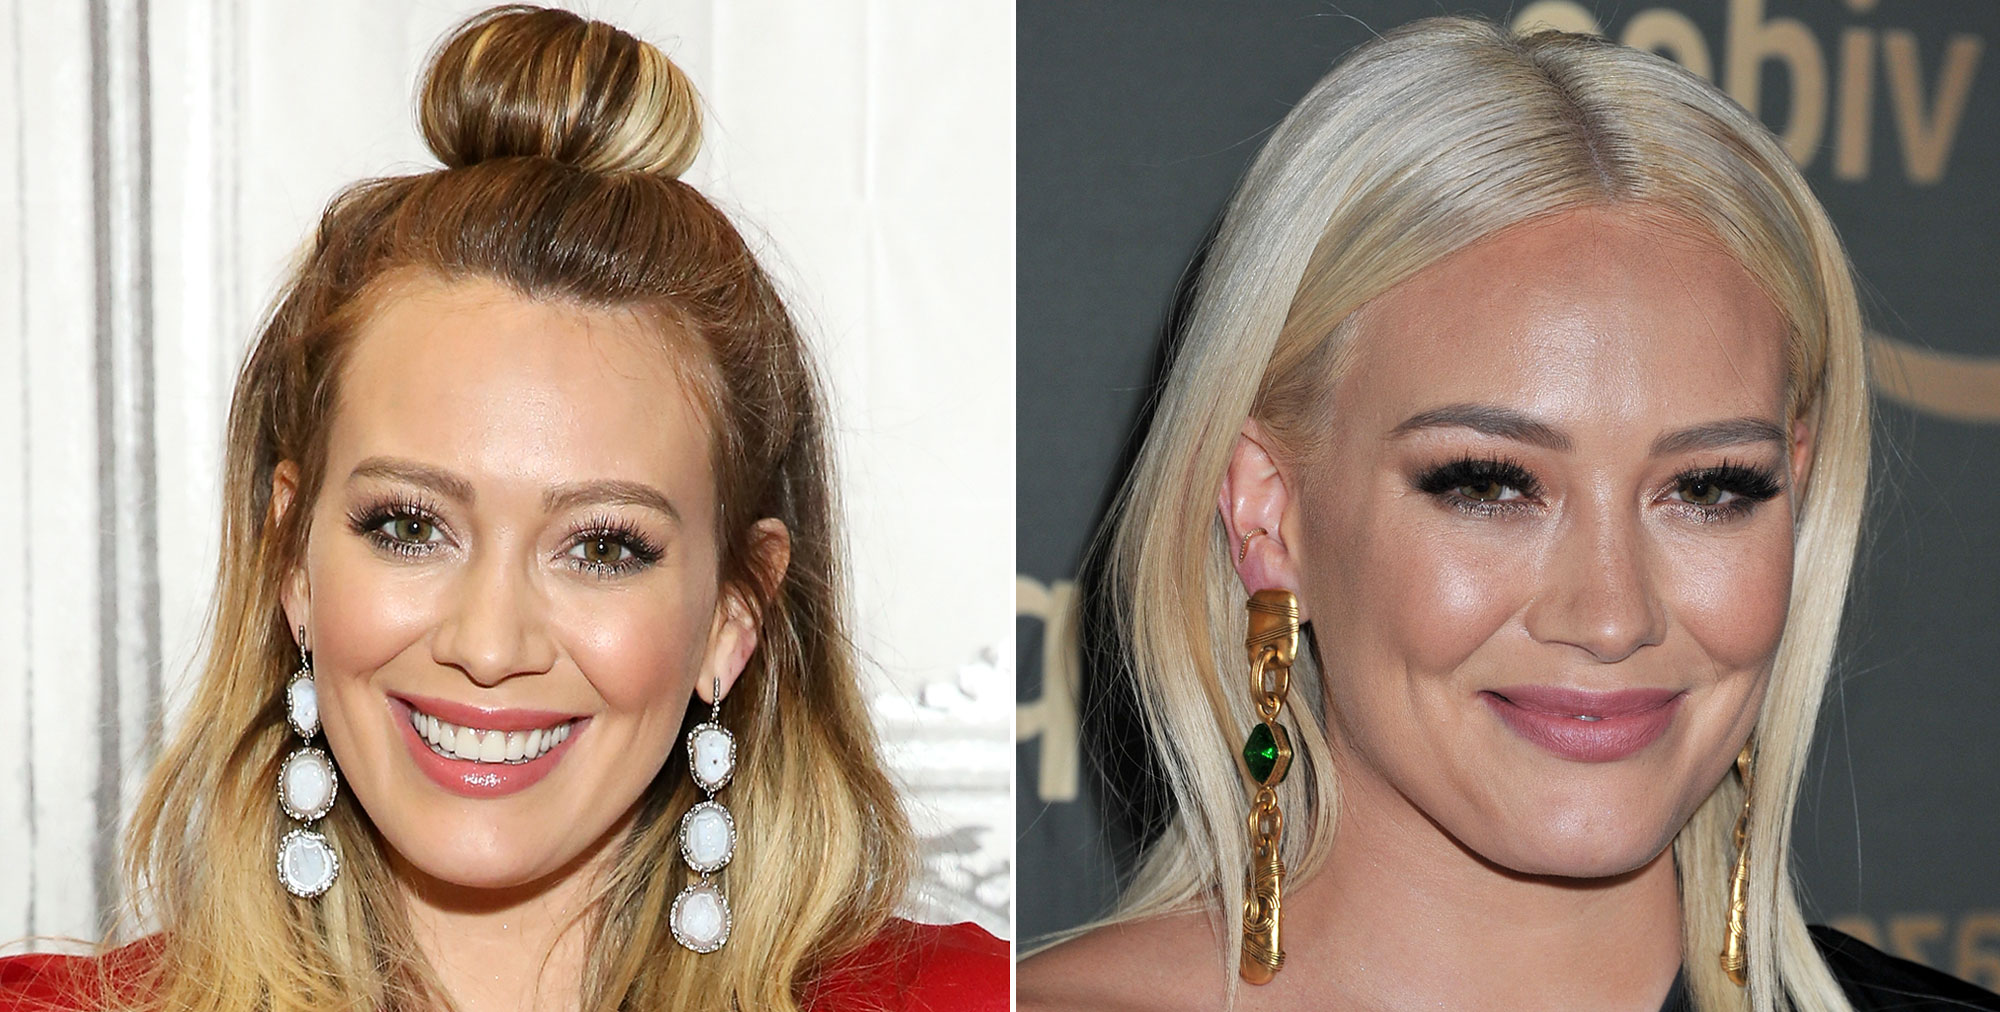 """Celebrity Hair Transformations of 2019 - After debuting a """"winter white"""" shade in December, the actress has gone even brighter in the new year. Her stylist Nikki Lee posted on Instagram that she whipped up """"fresh blonde for the hottest mom"""" ahead of the Golden Globe afterparties on Sunday, January 6."""